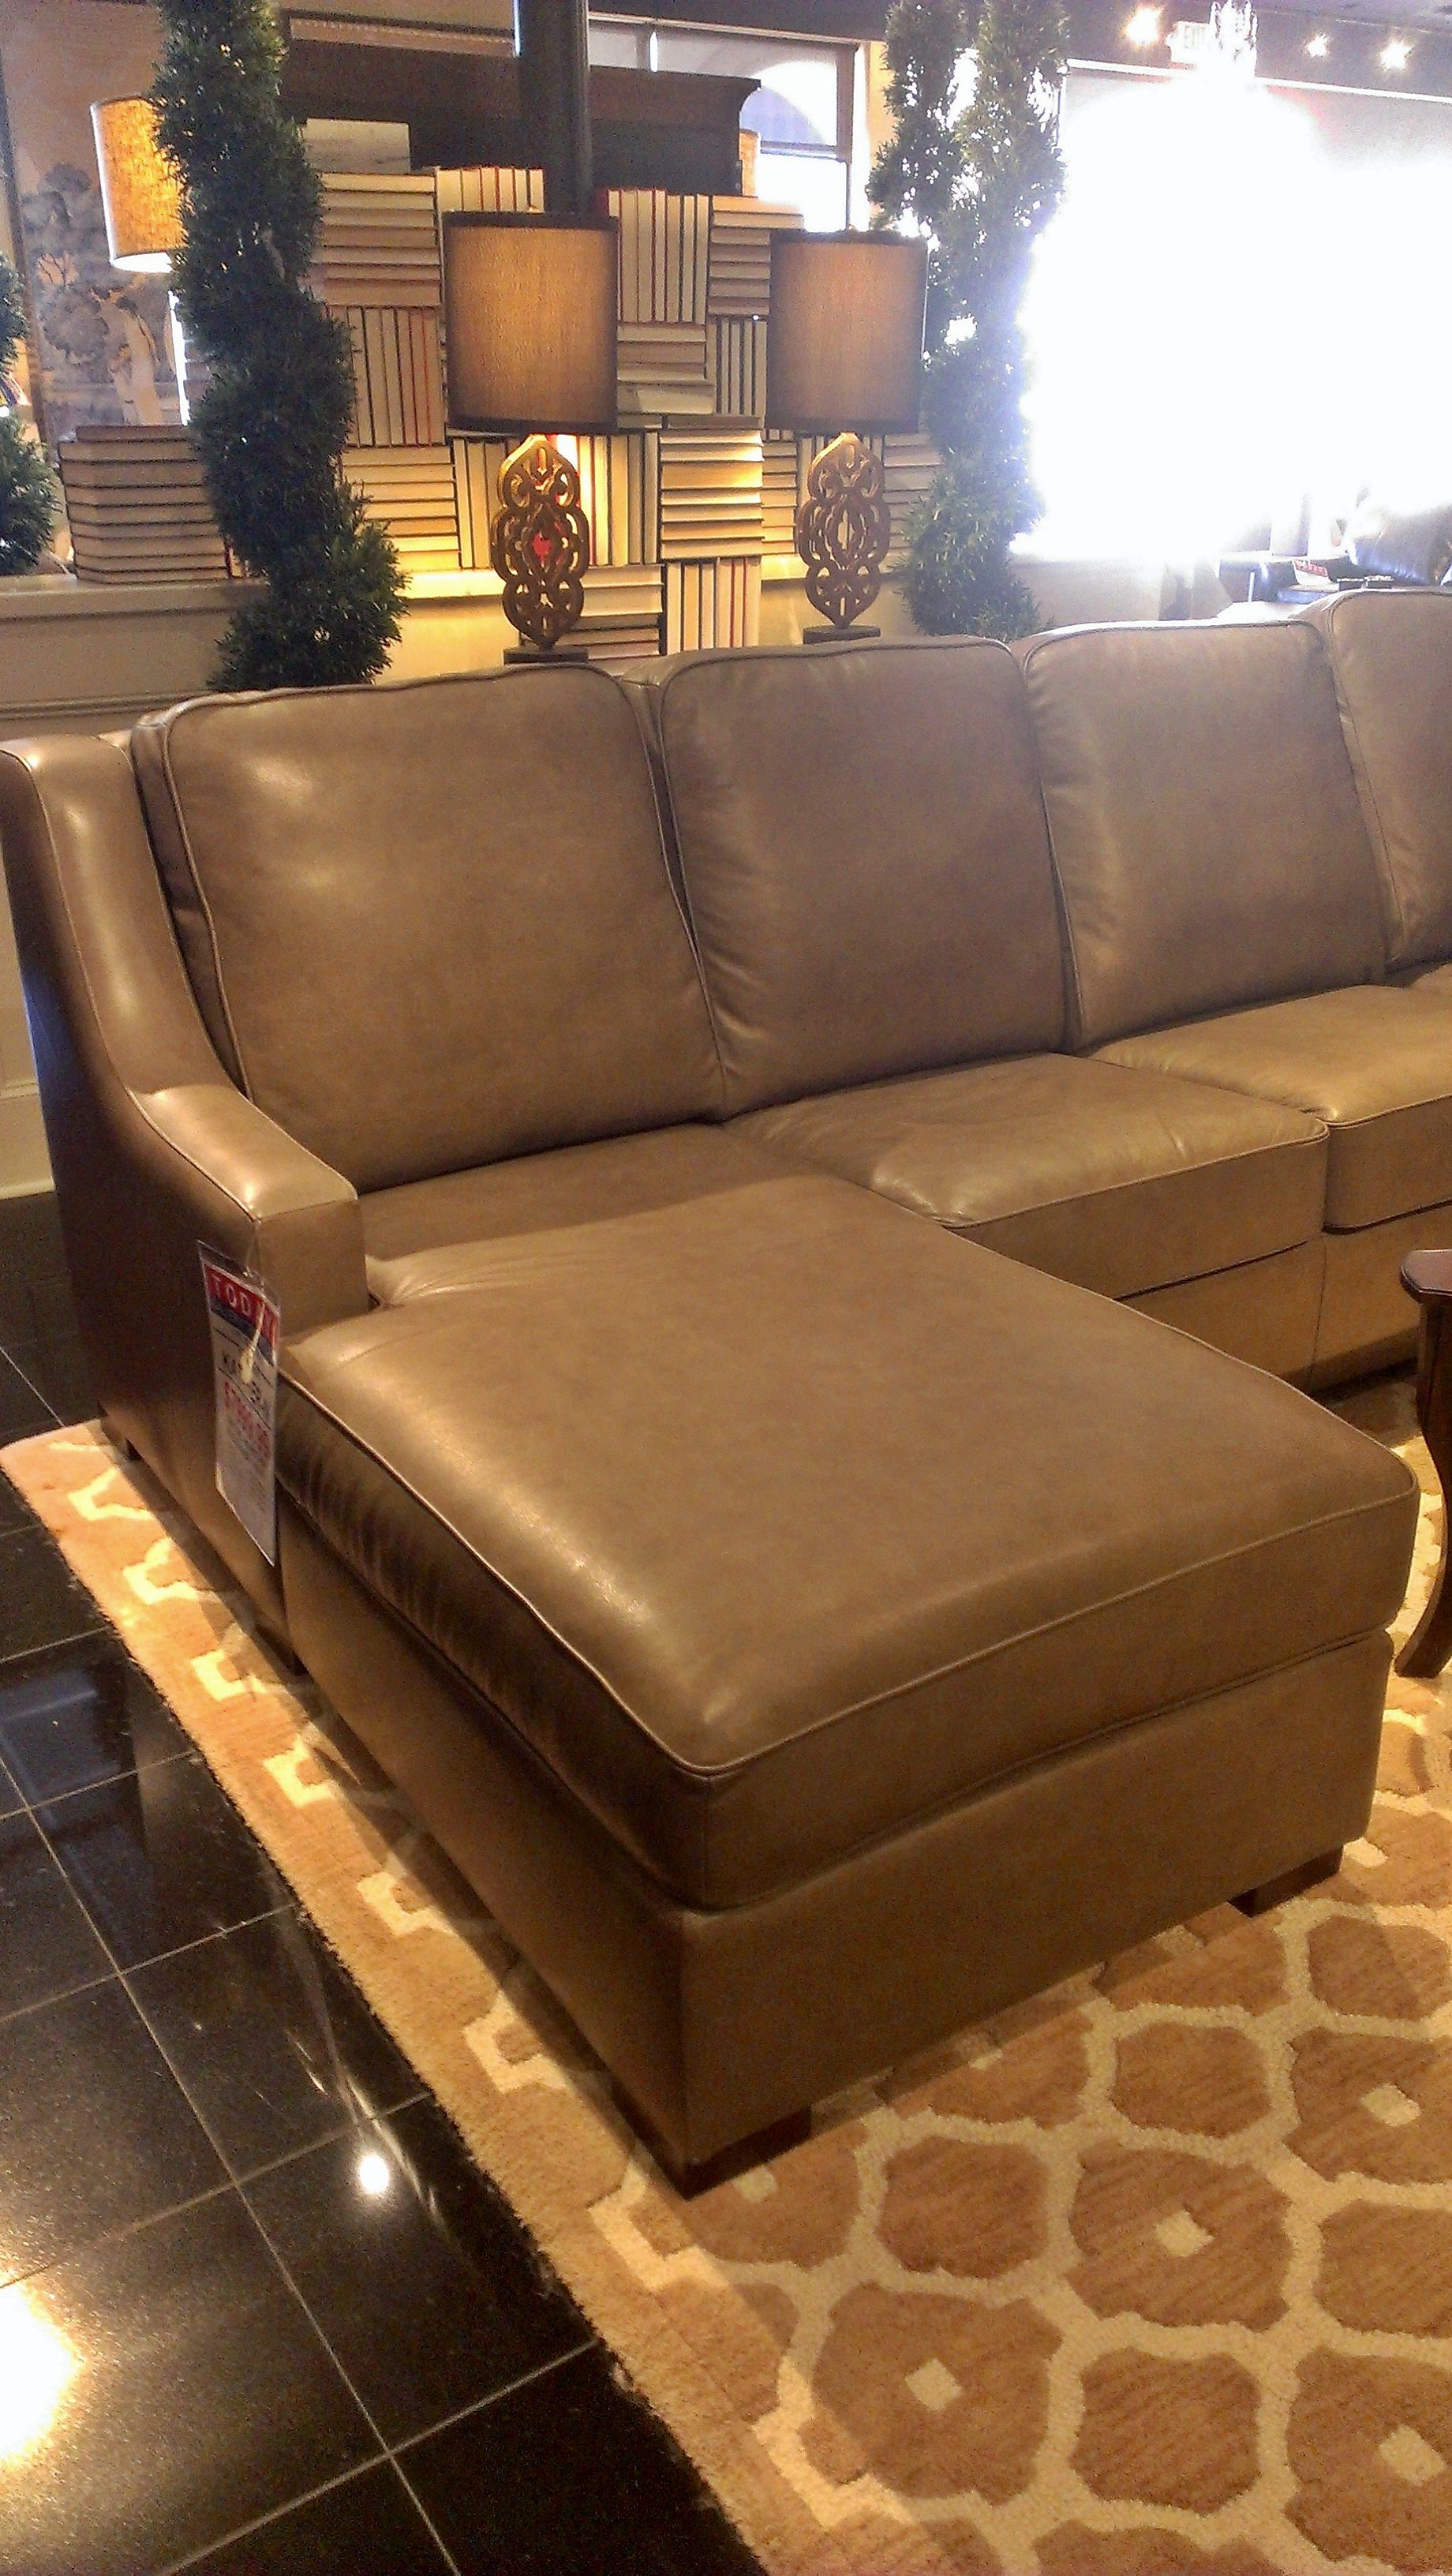 Sleek And Contemporary Leather Sectional Houston Tx Gallery Furniture Modern Furniture Stores Italian Furniture Modern Modern Furniture